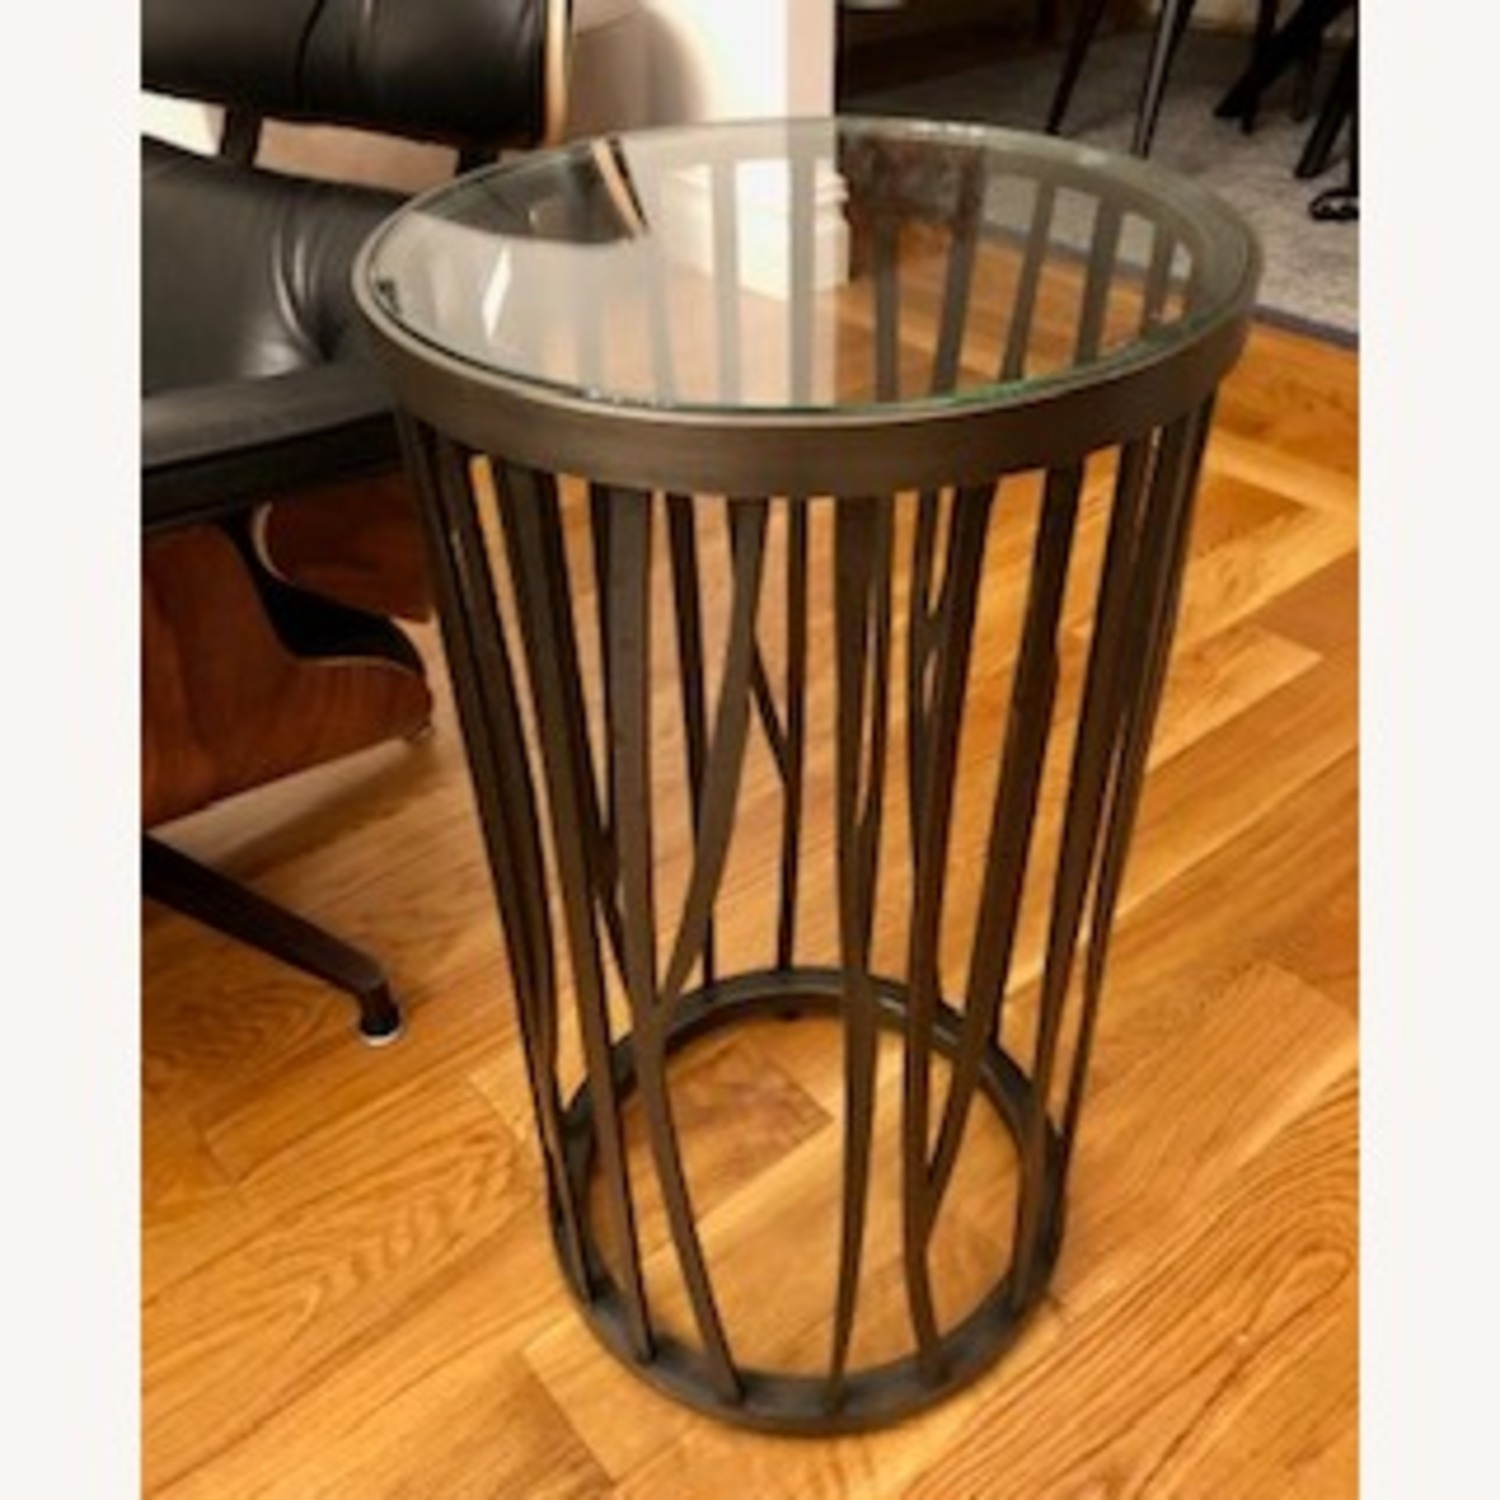 Ethan Allen Accent Table - image-2